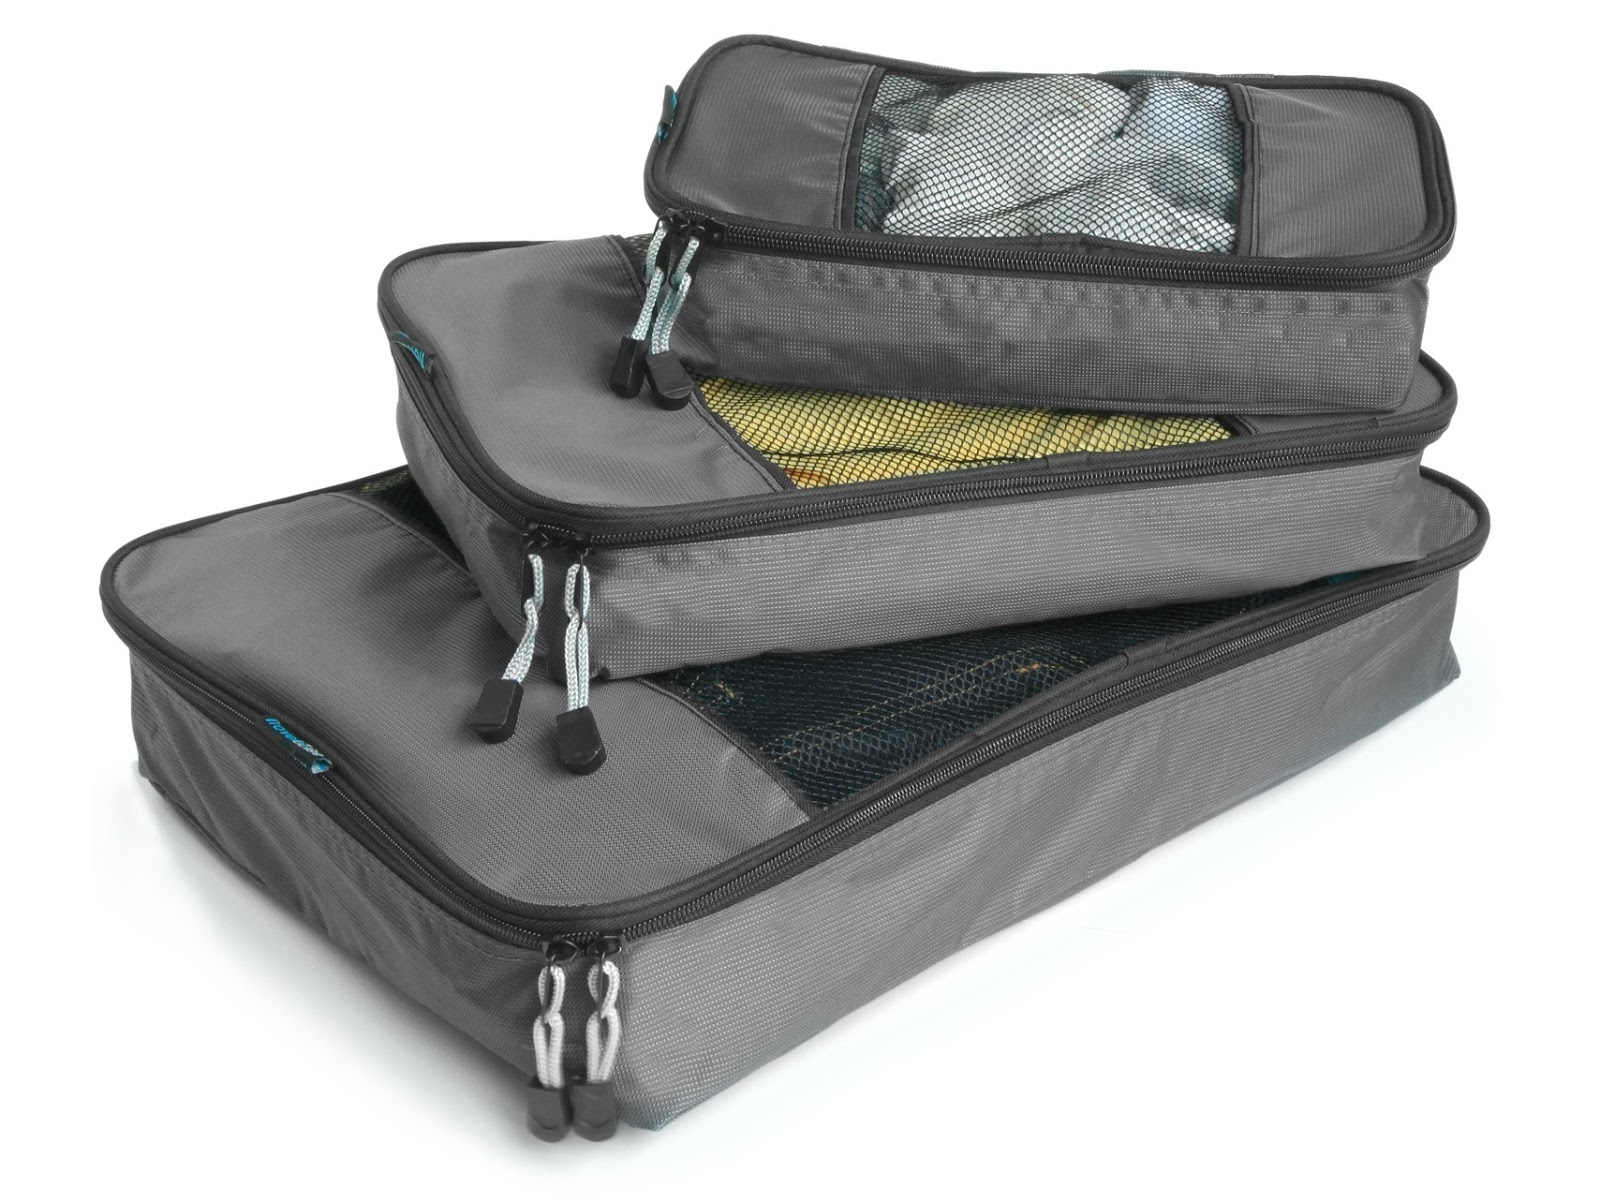 EatSmart Packing Cubes